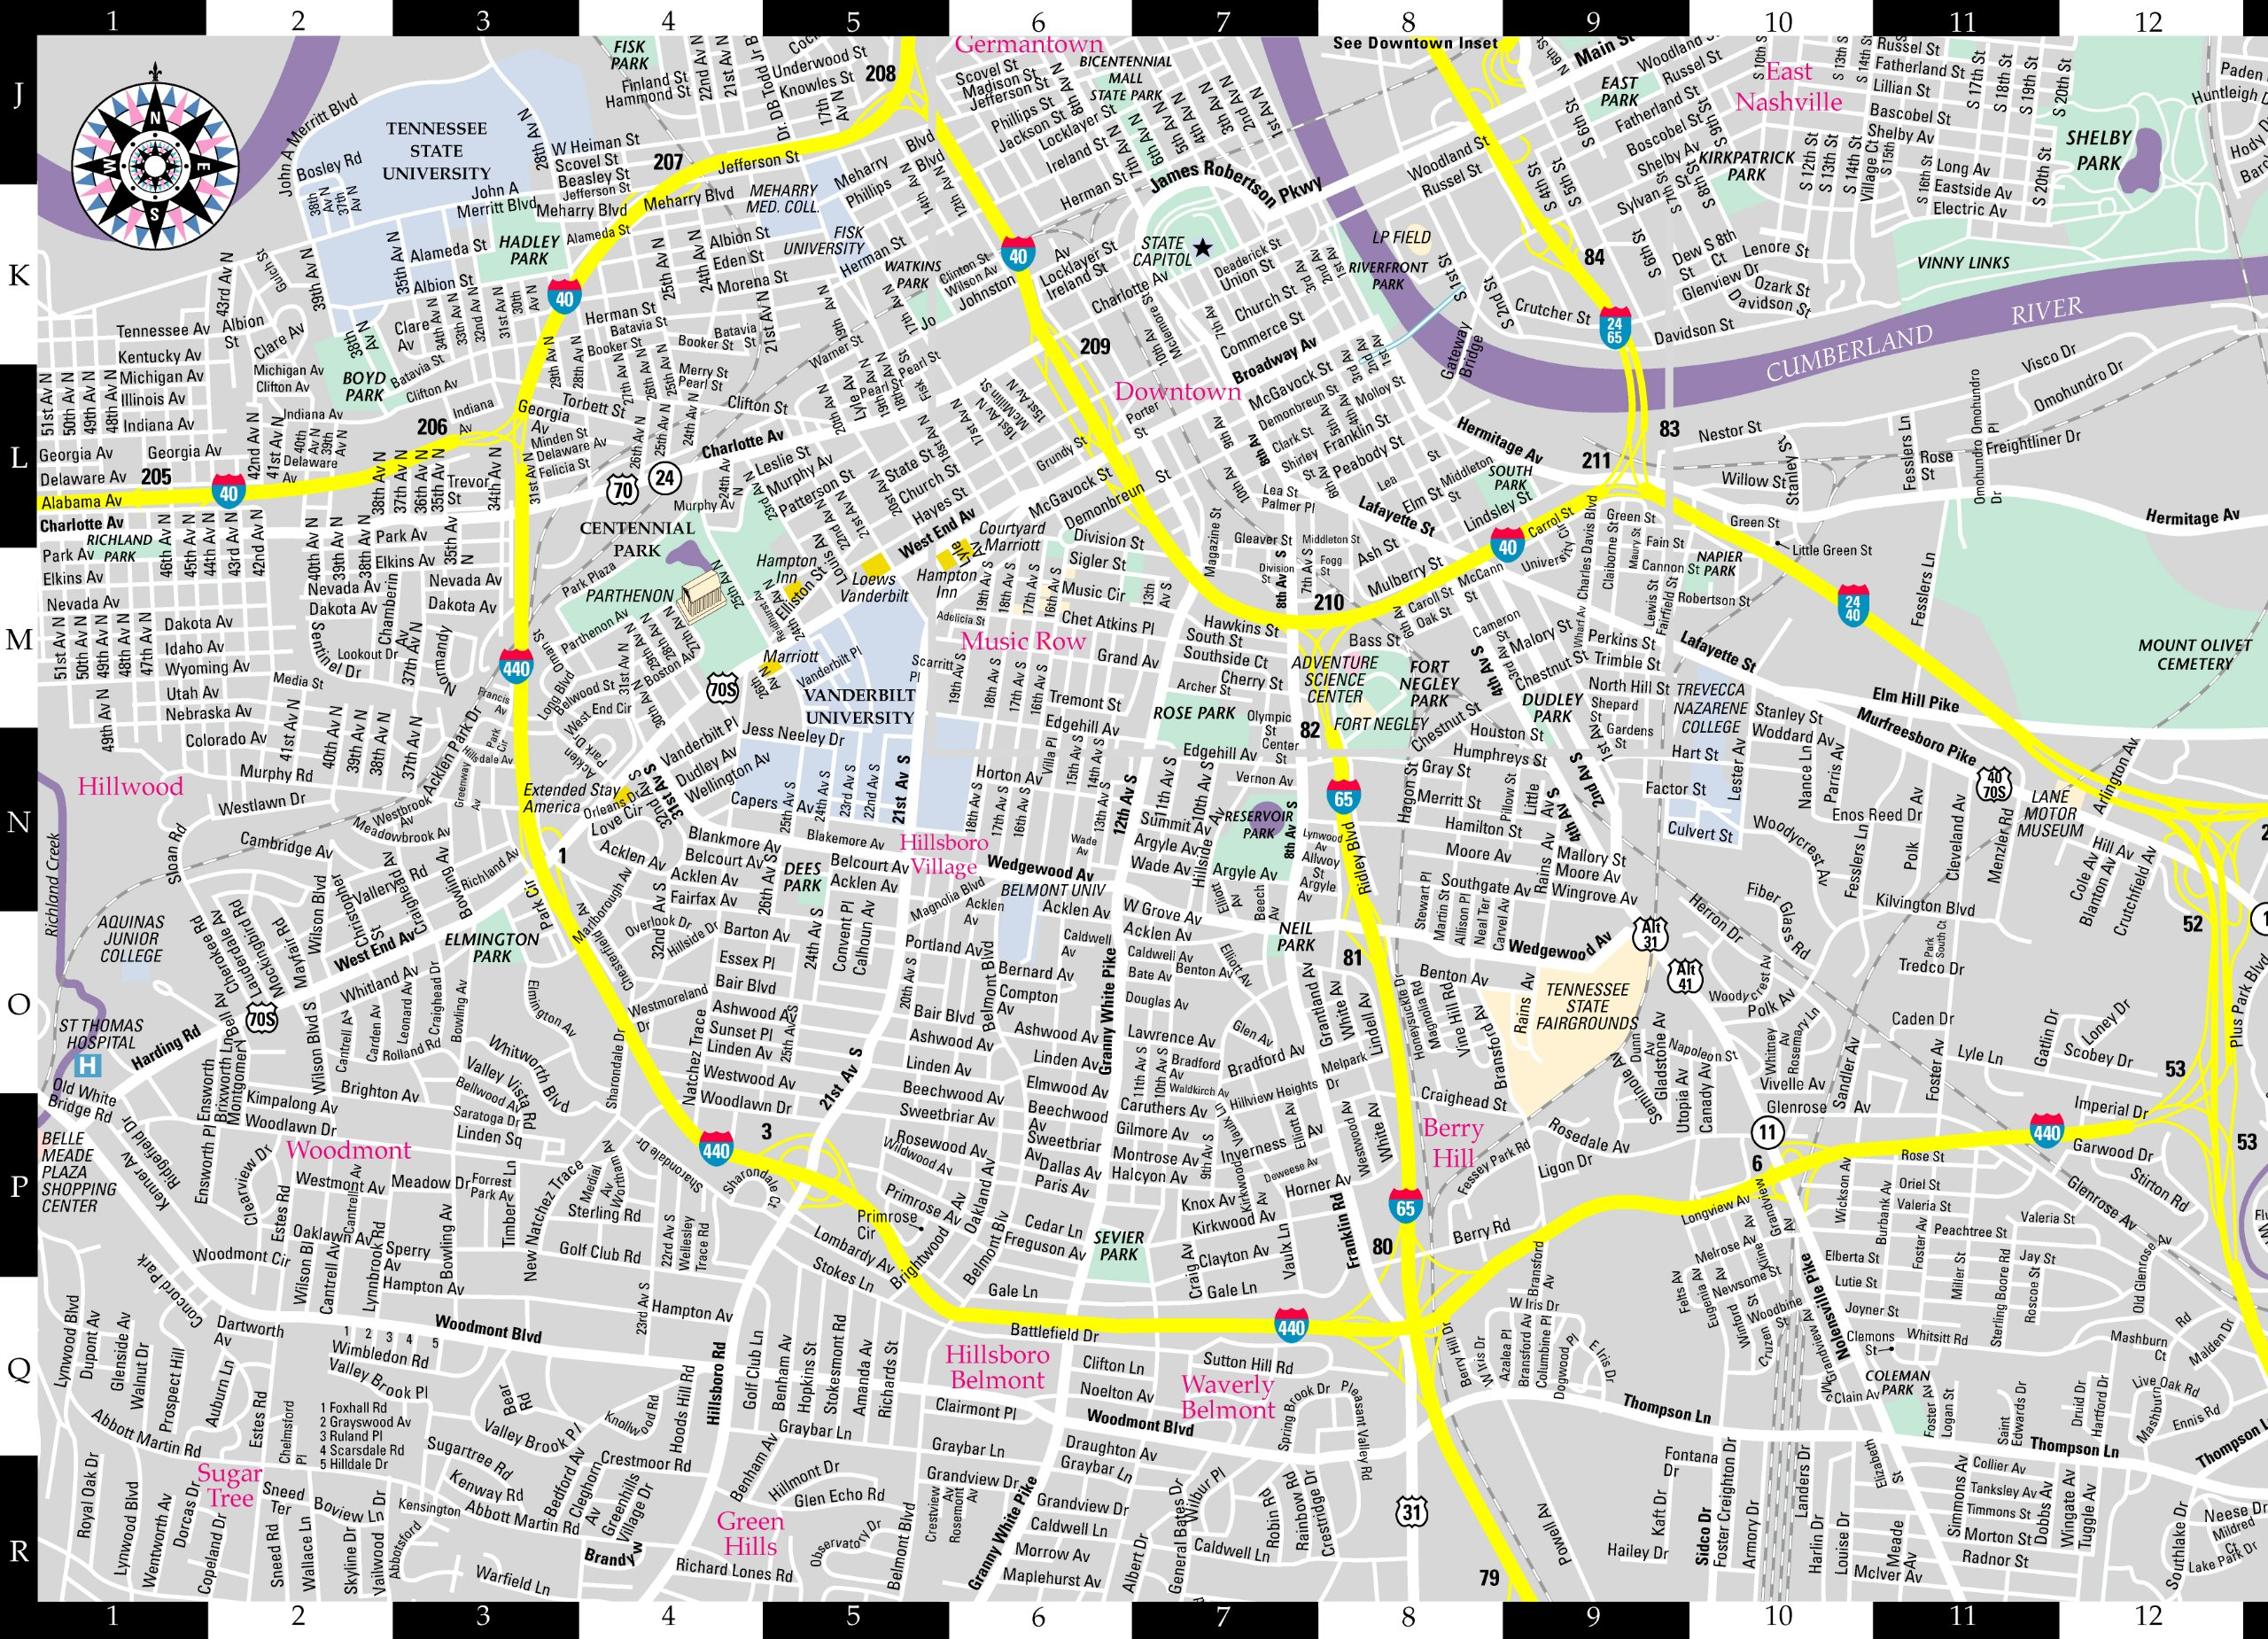 Streetwise Nashville Map - Laminated City Center Street Map of ...